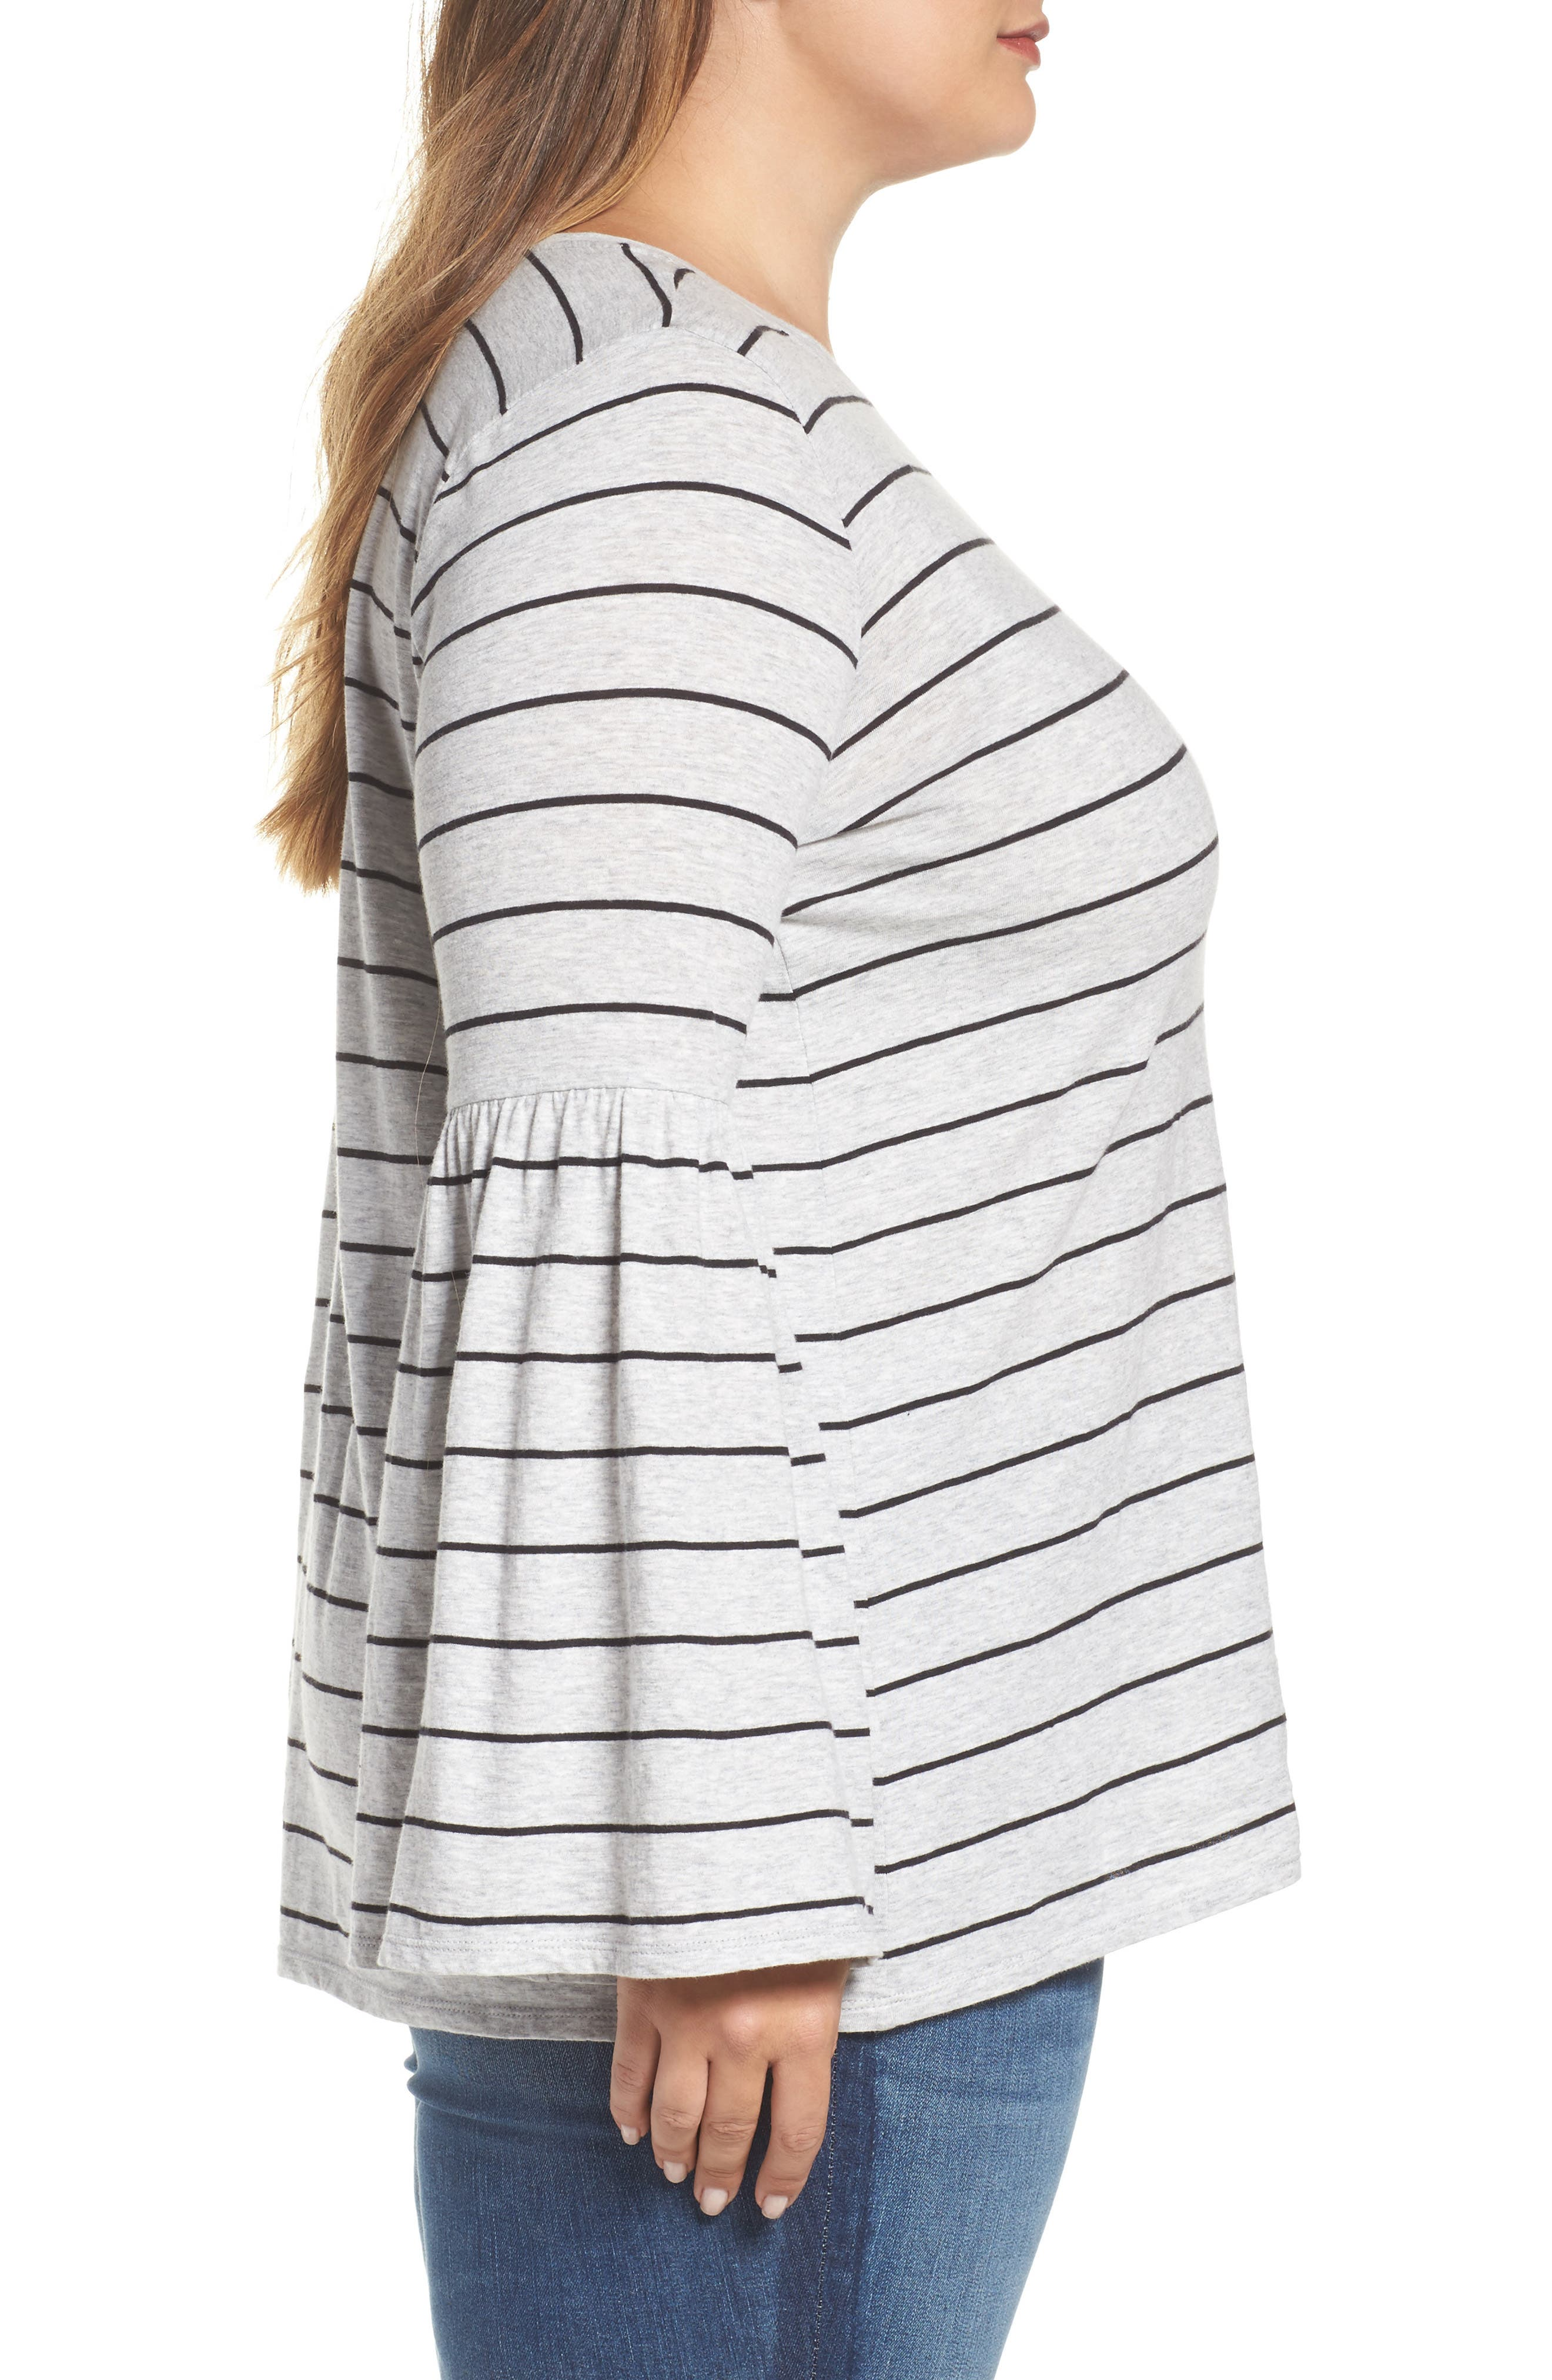 Alternate Image 3  - Two by Vince Camuto Nova Stripe Bell Sleeve Top (Plus Size)